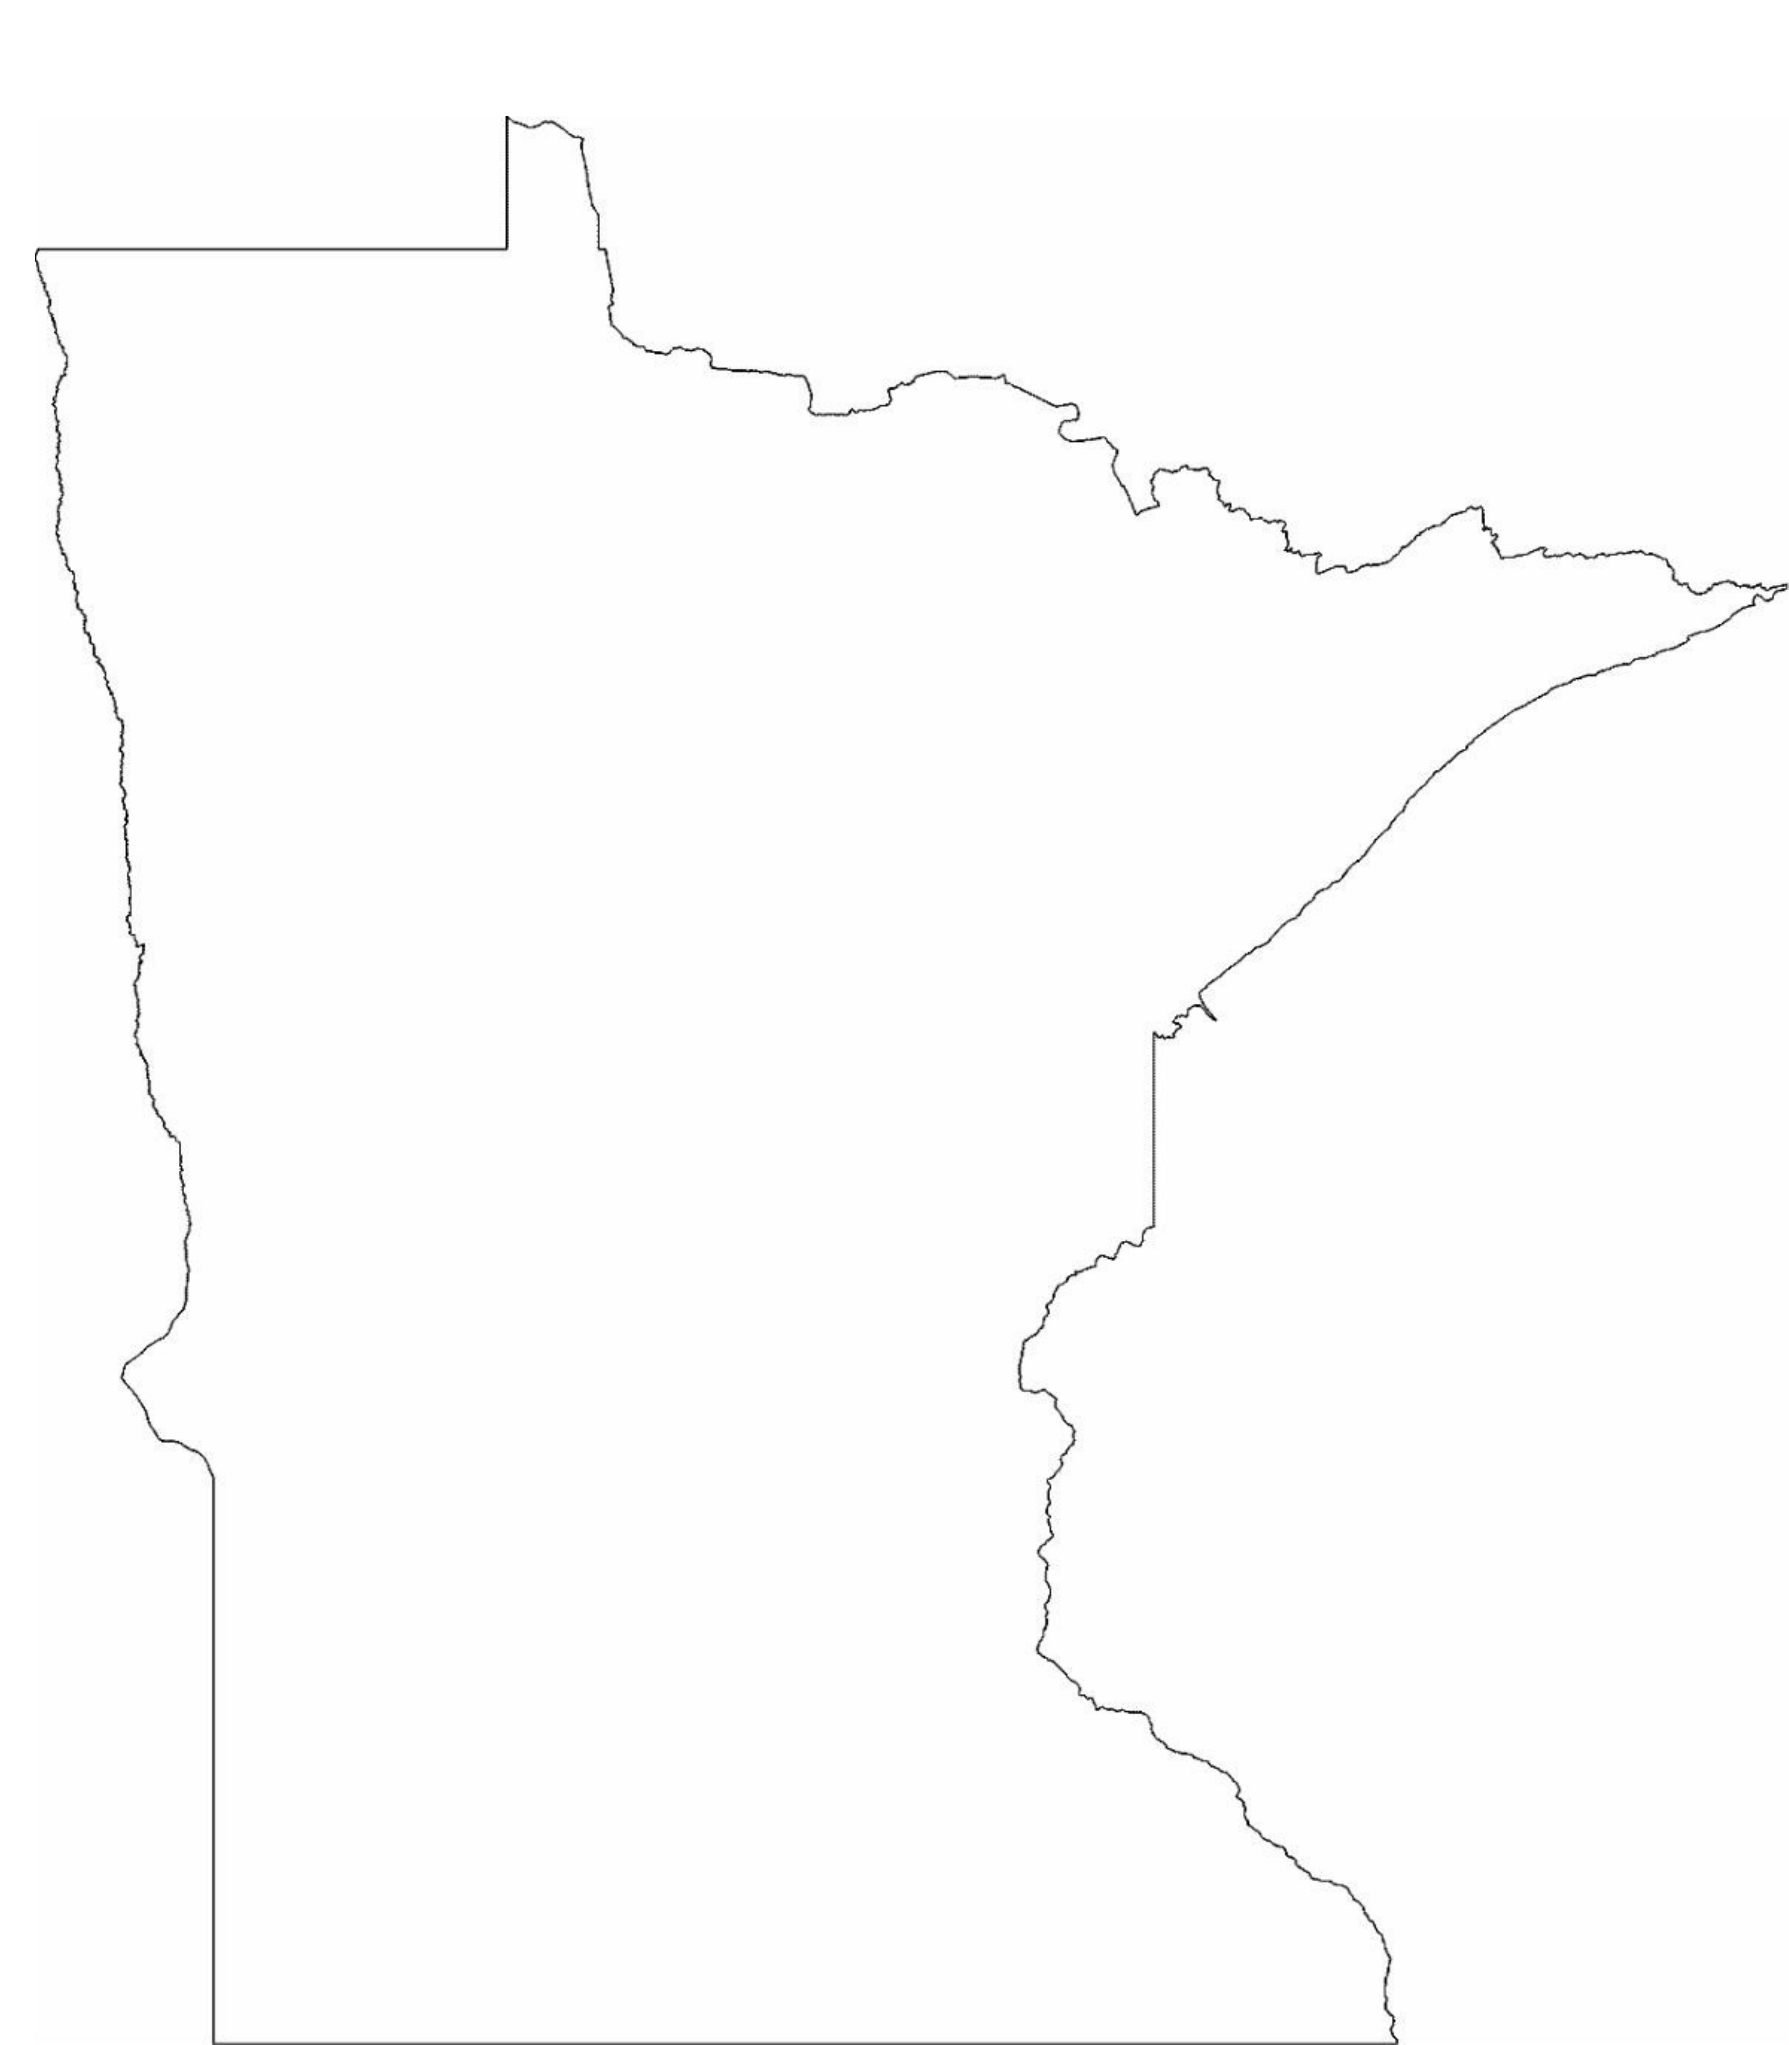 Minnesota State Outline Map Free Download